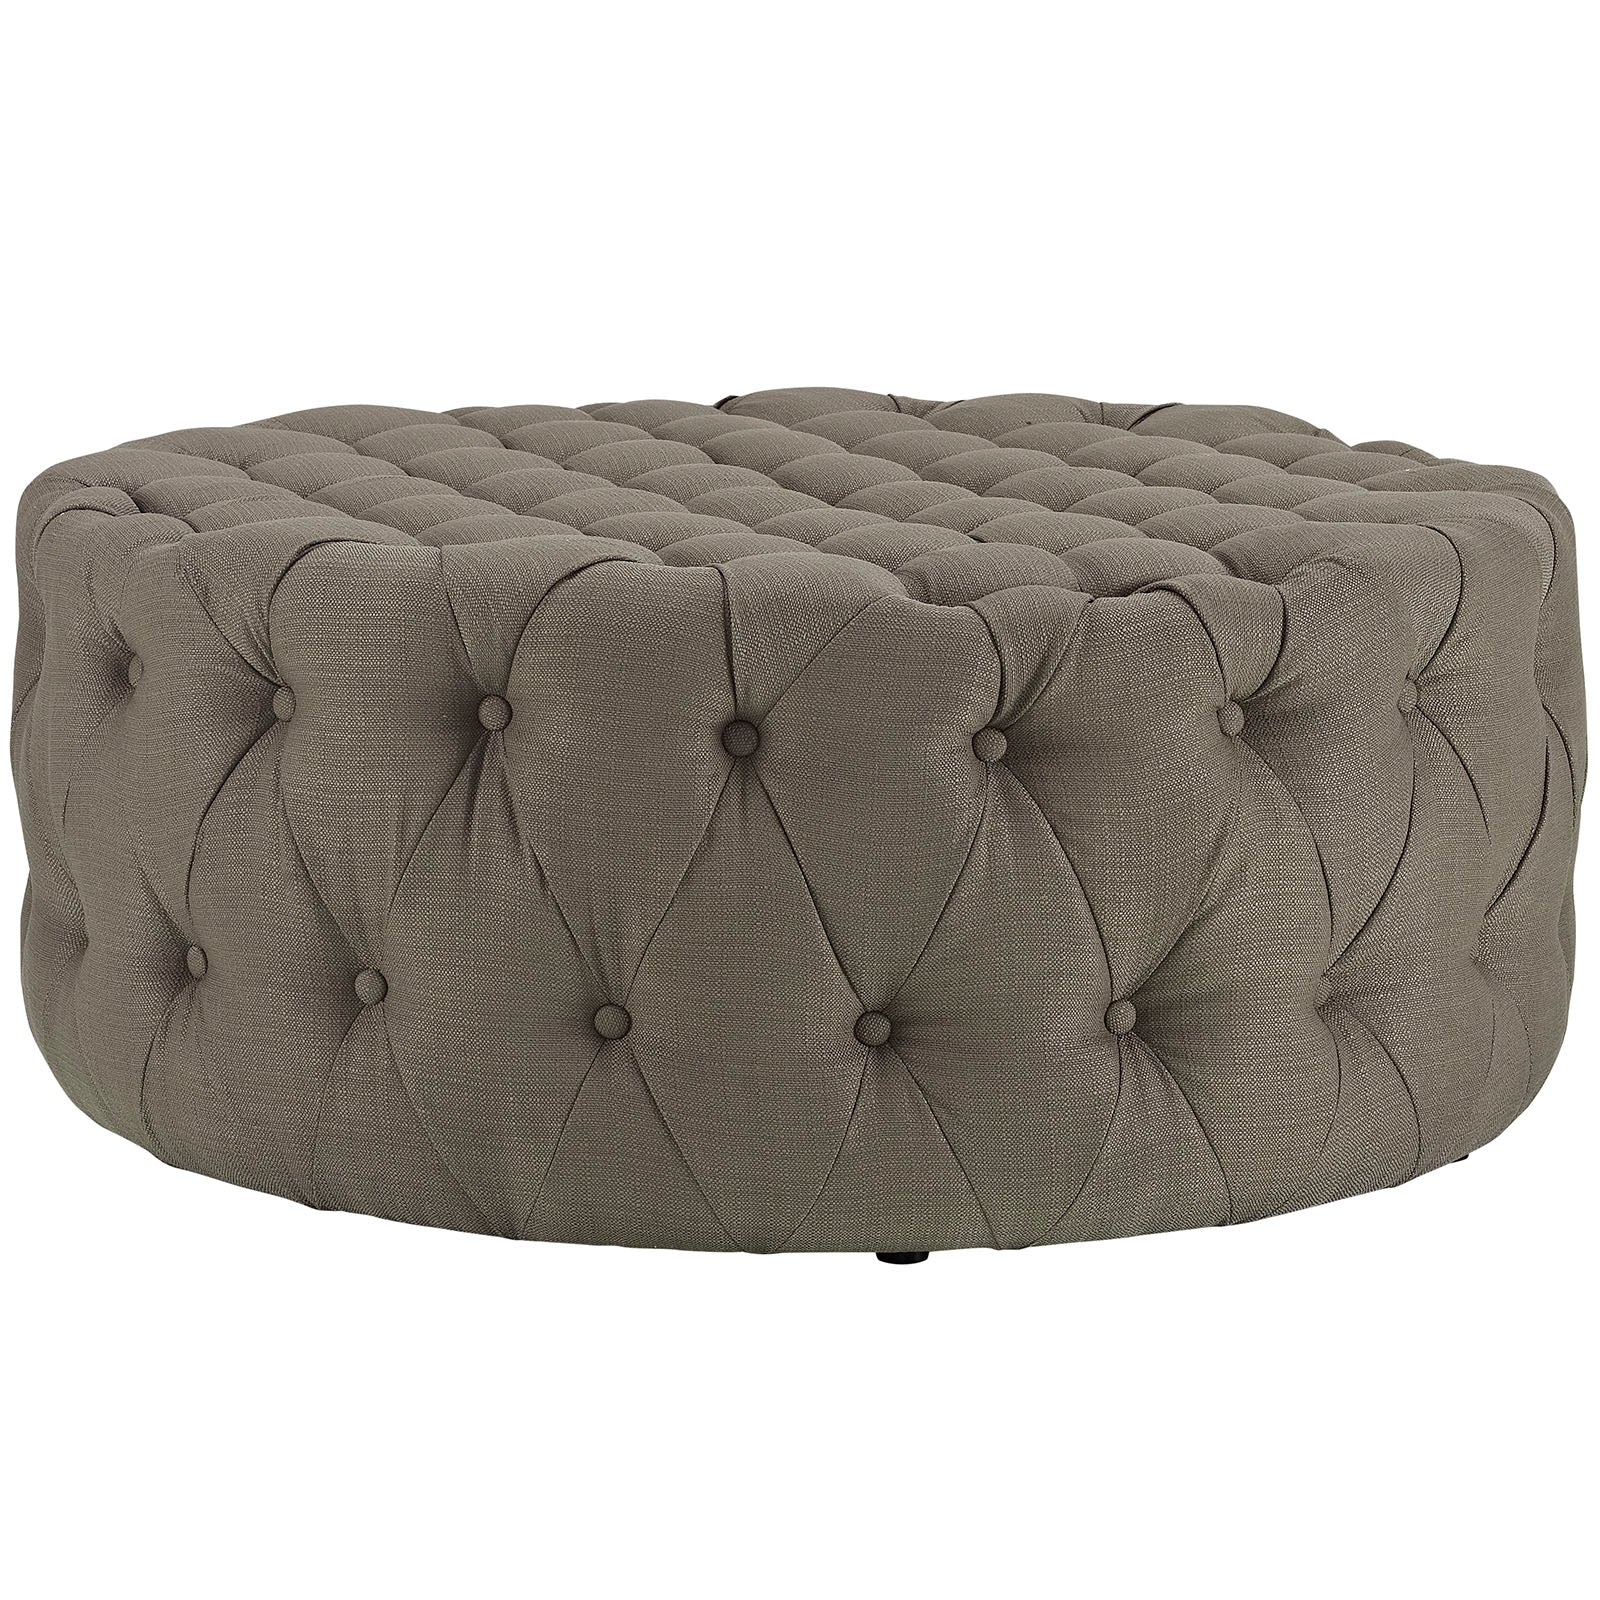 Modway Eei 2225 Bei Amour Large Round Upholstered Tufted